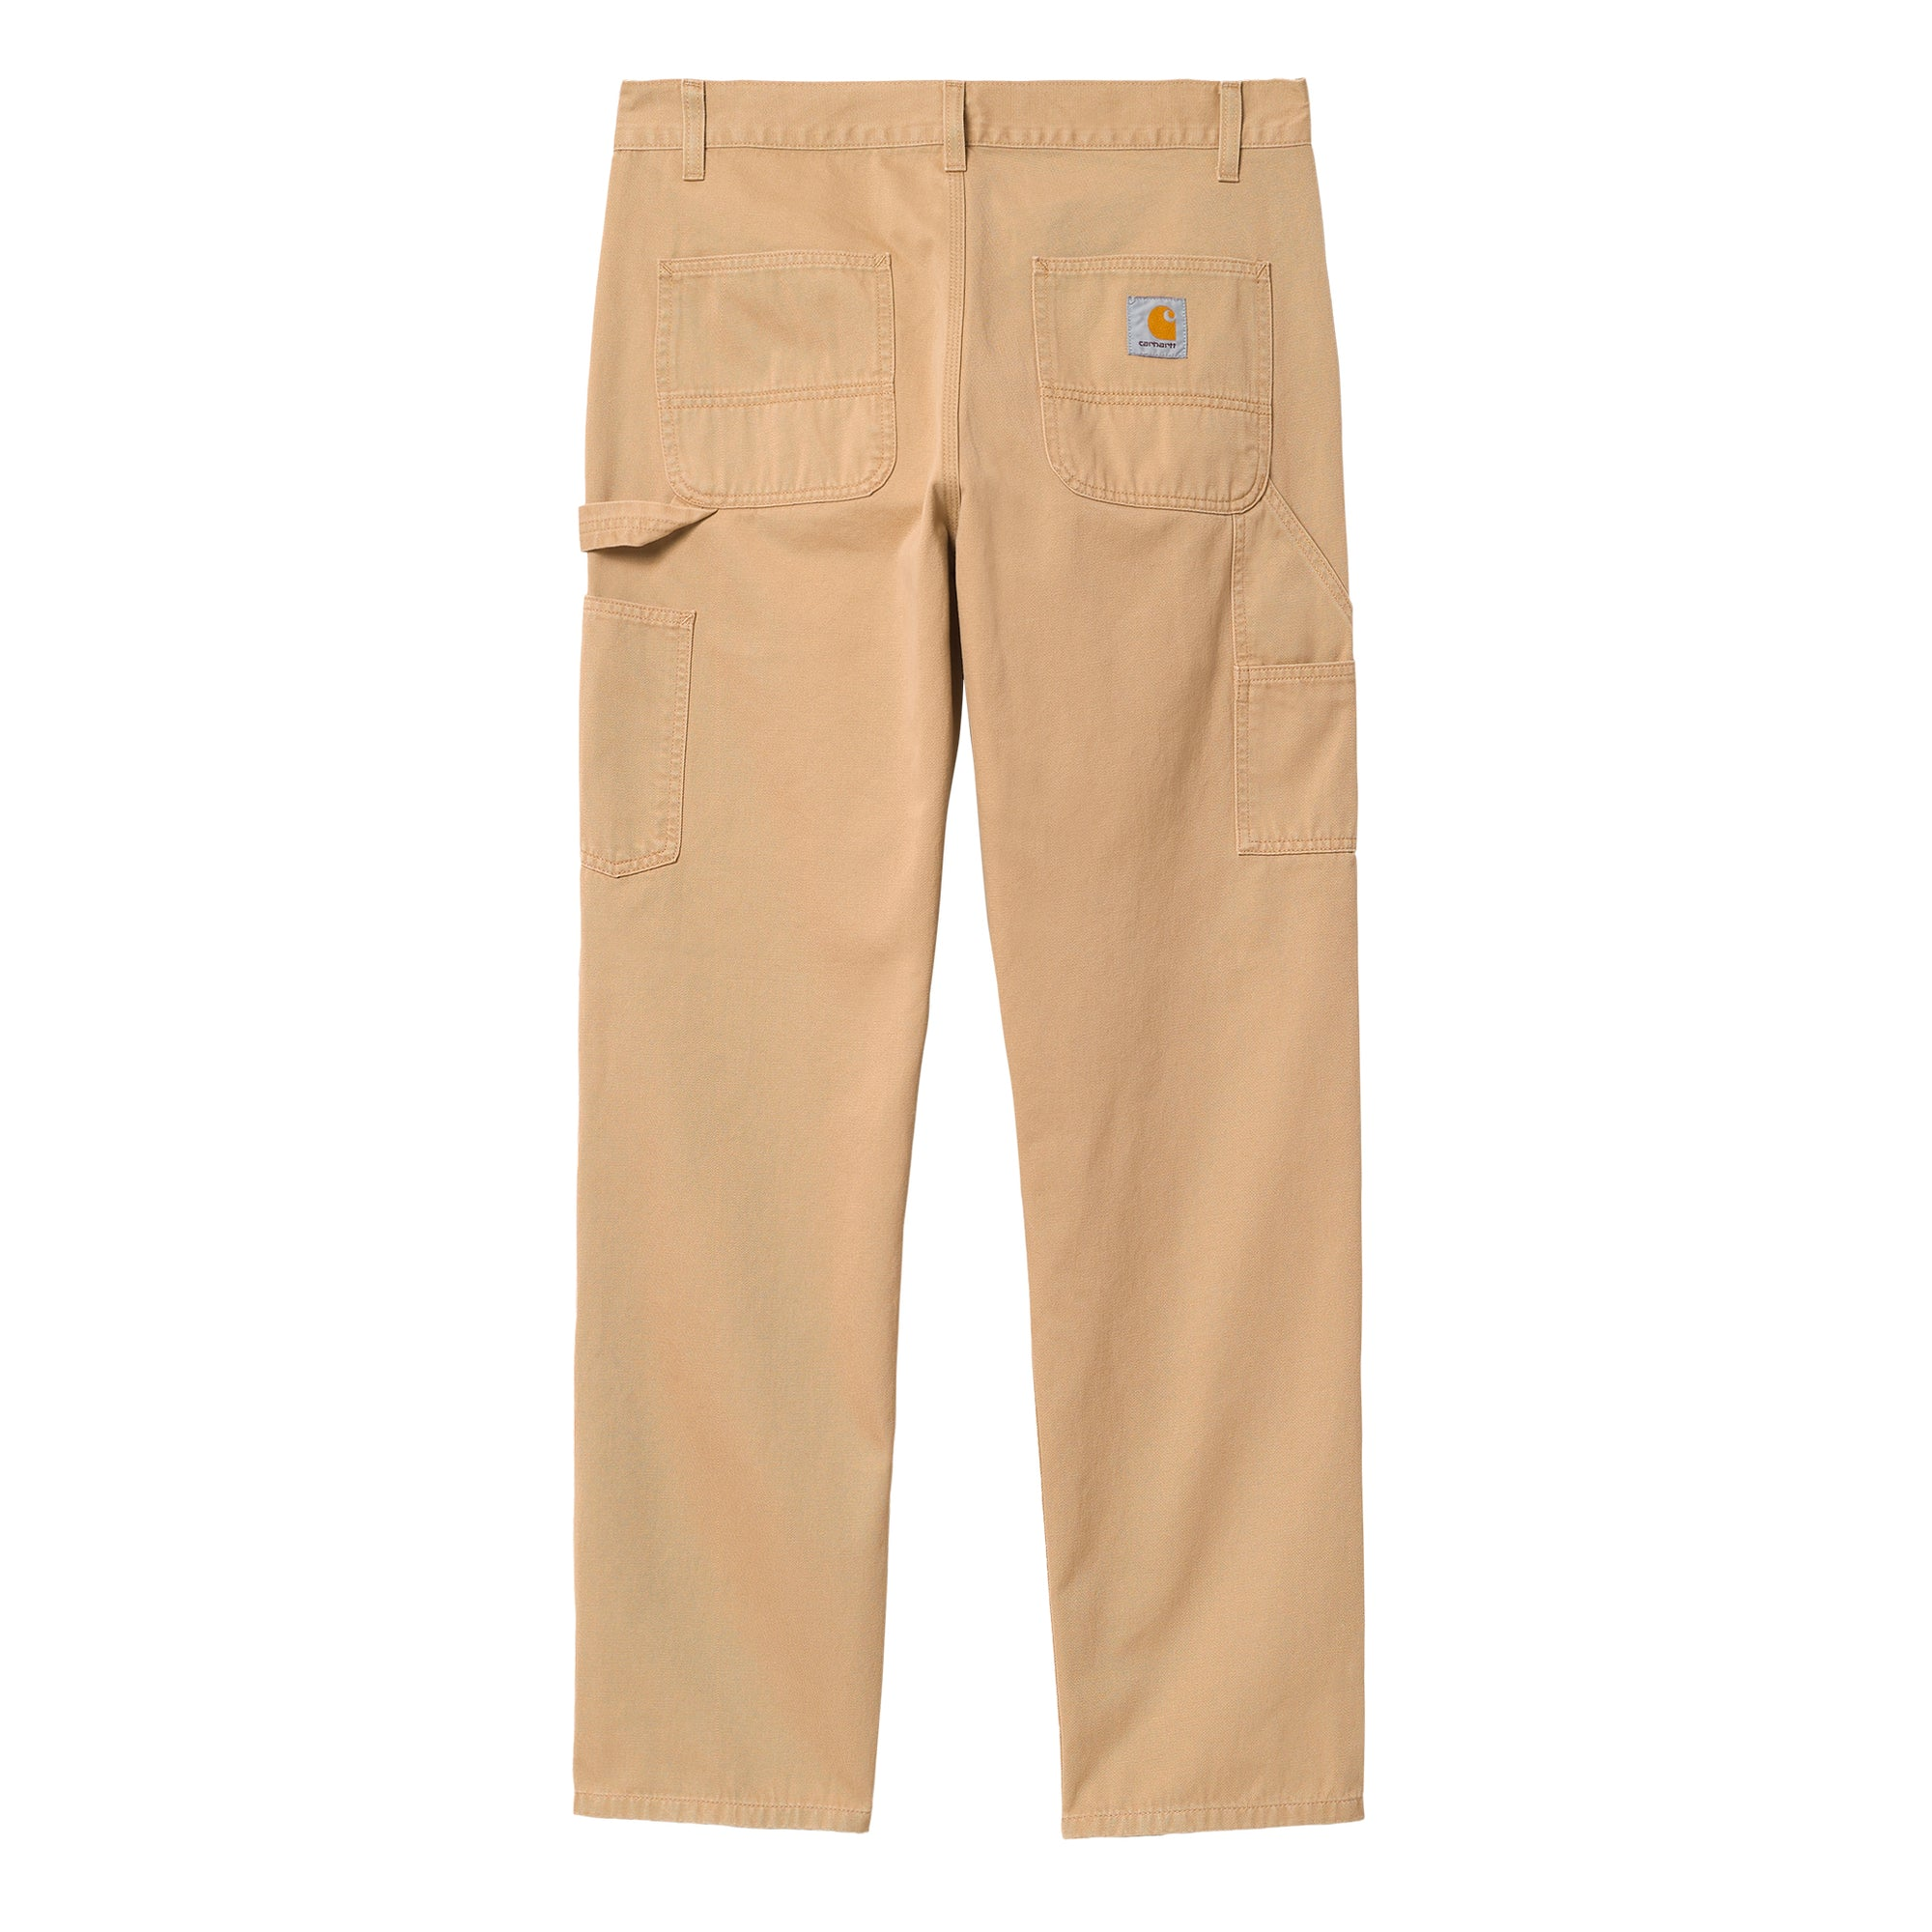 Carhartt WIP Ruck Double Knee Pant: Dusty Hamilton Brown Stone Wash